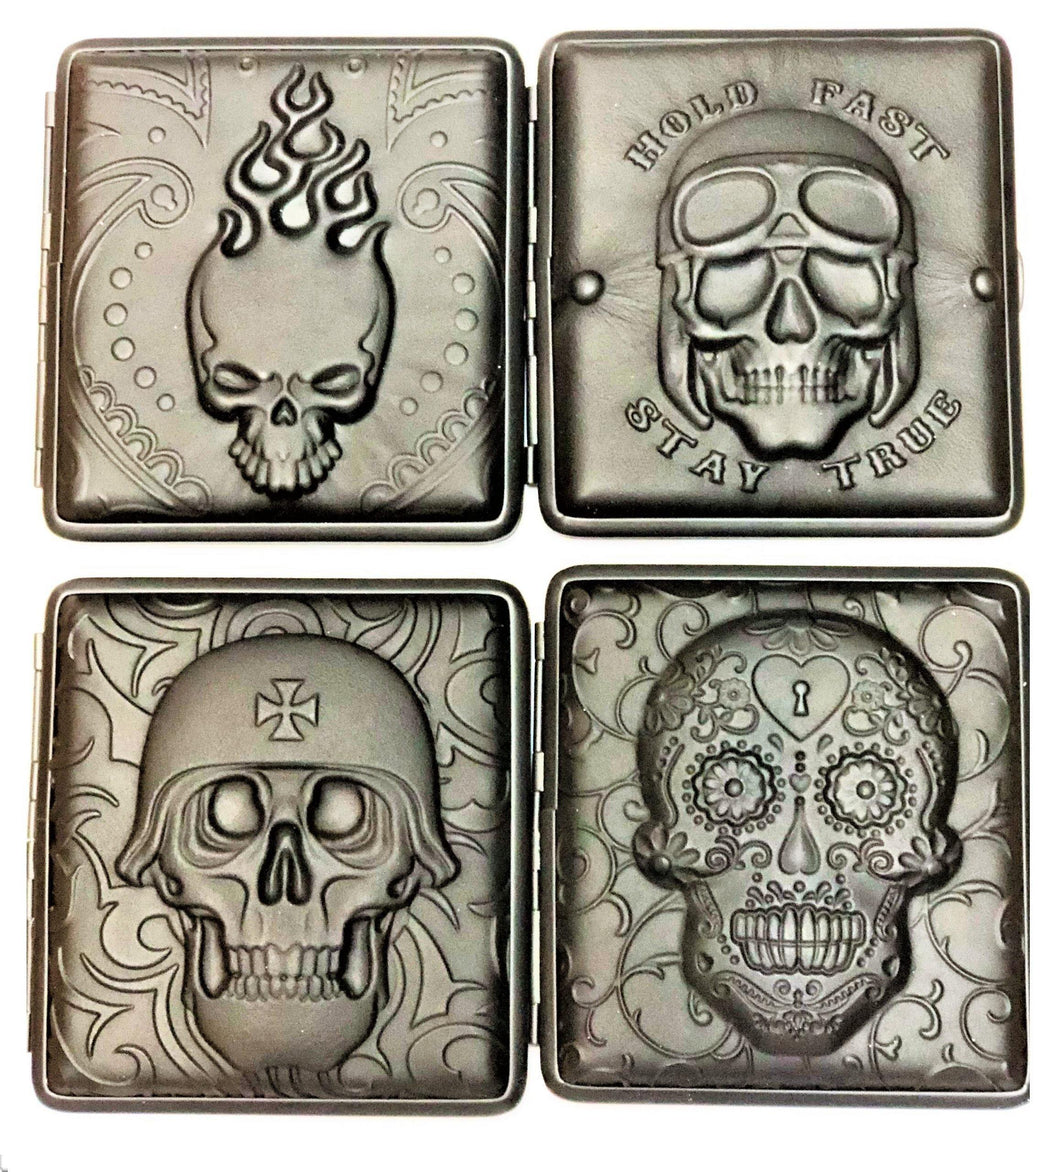 3D Skull Designs Cigarette Hard Case Tobacco Storage - Best Bongs And More